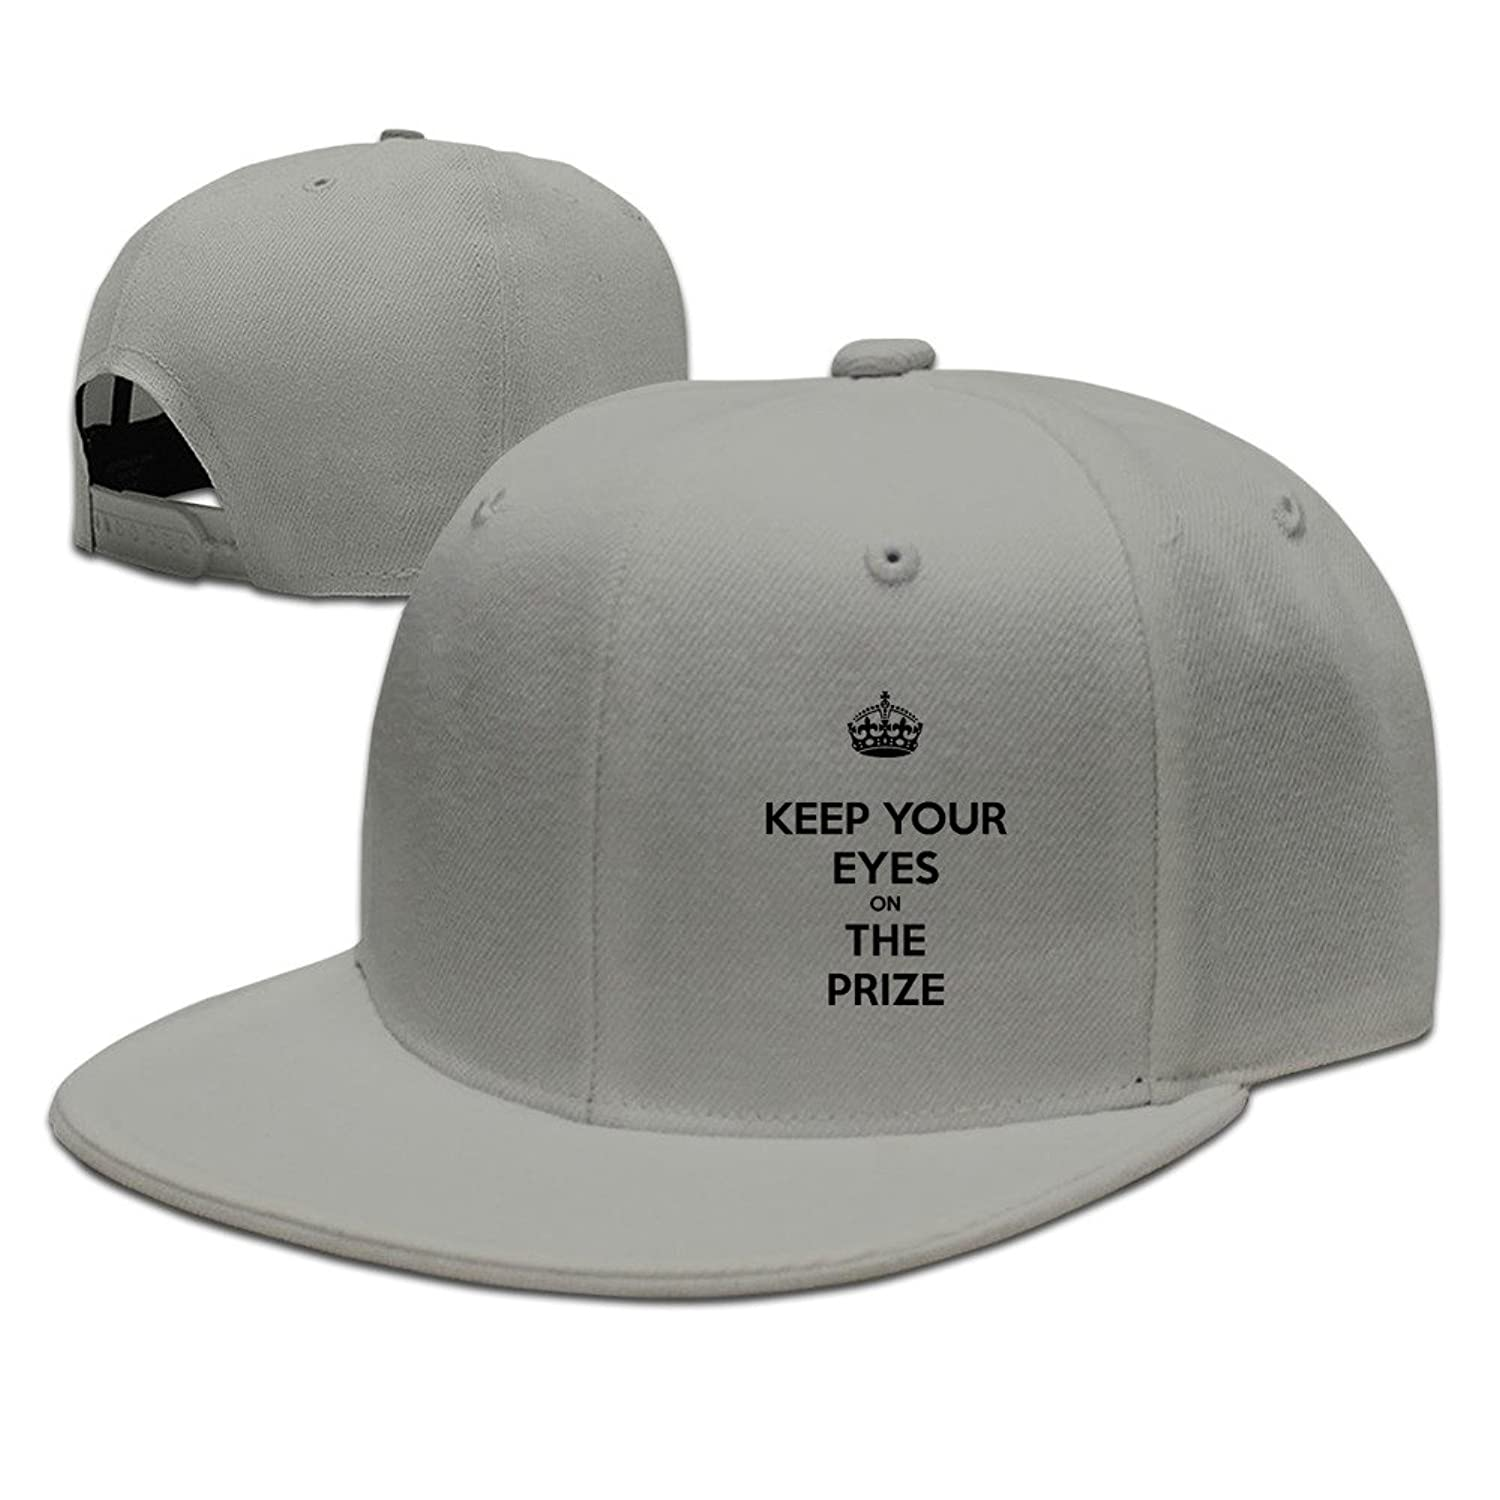 HNN Unisex Keep Your Eyes On The Prize Flat Baseball Caps Hats